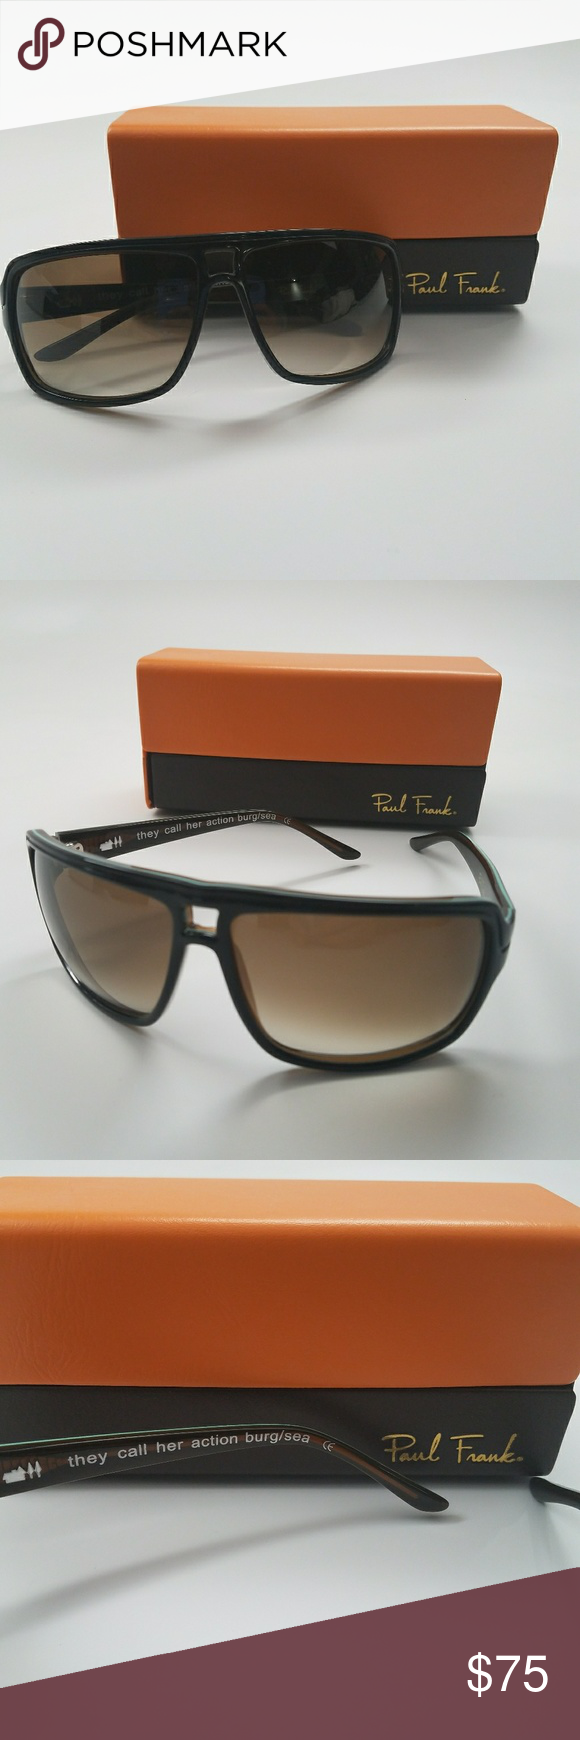 305ae28cb888 Paul Frank Sunglasses Model  they call her action burg sea. New   Complete  with box Paul Frank Accessories Glasses